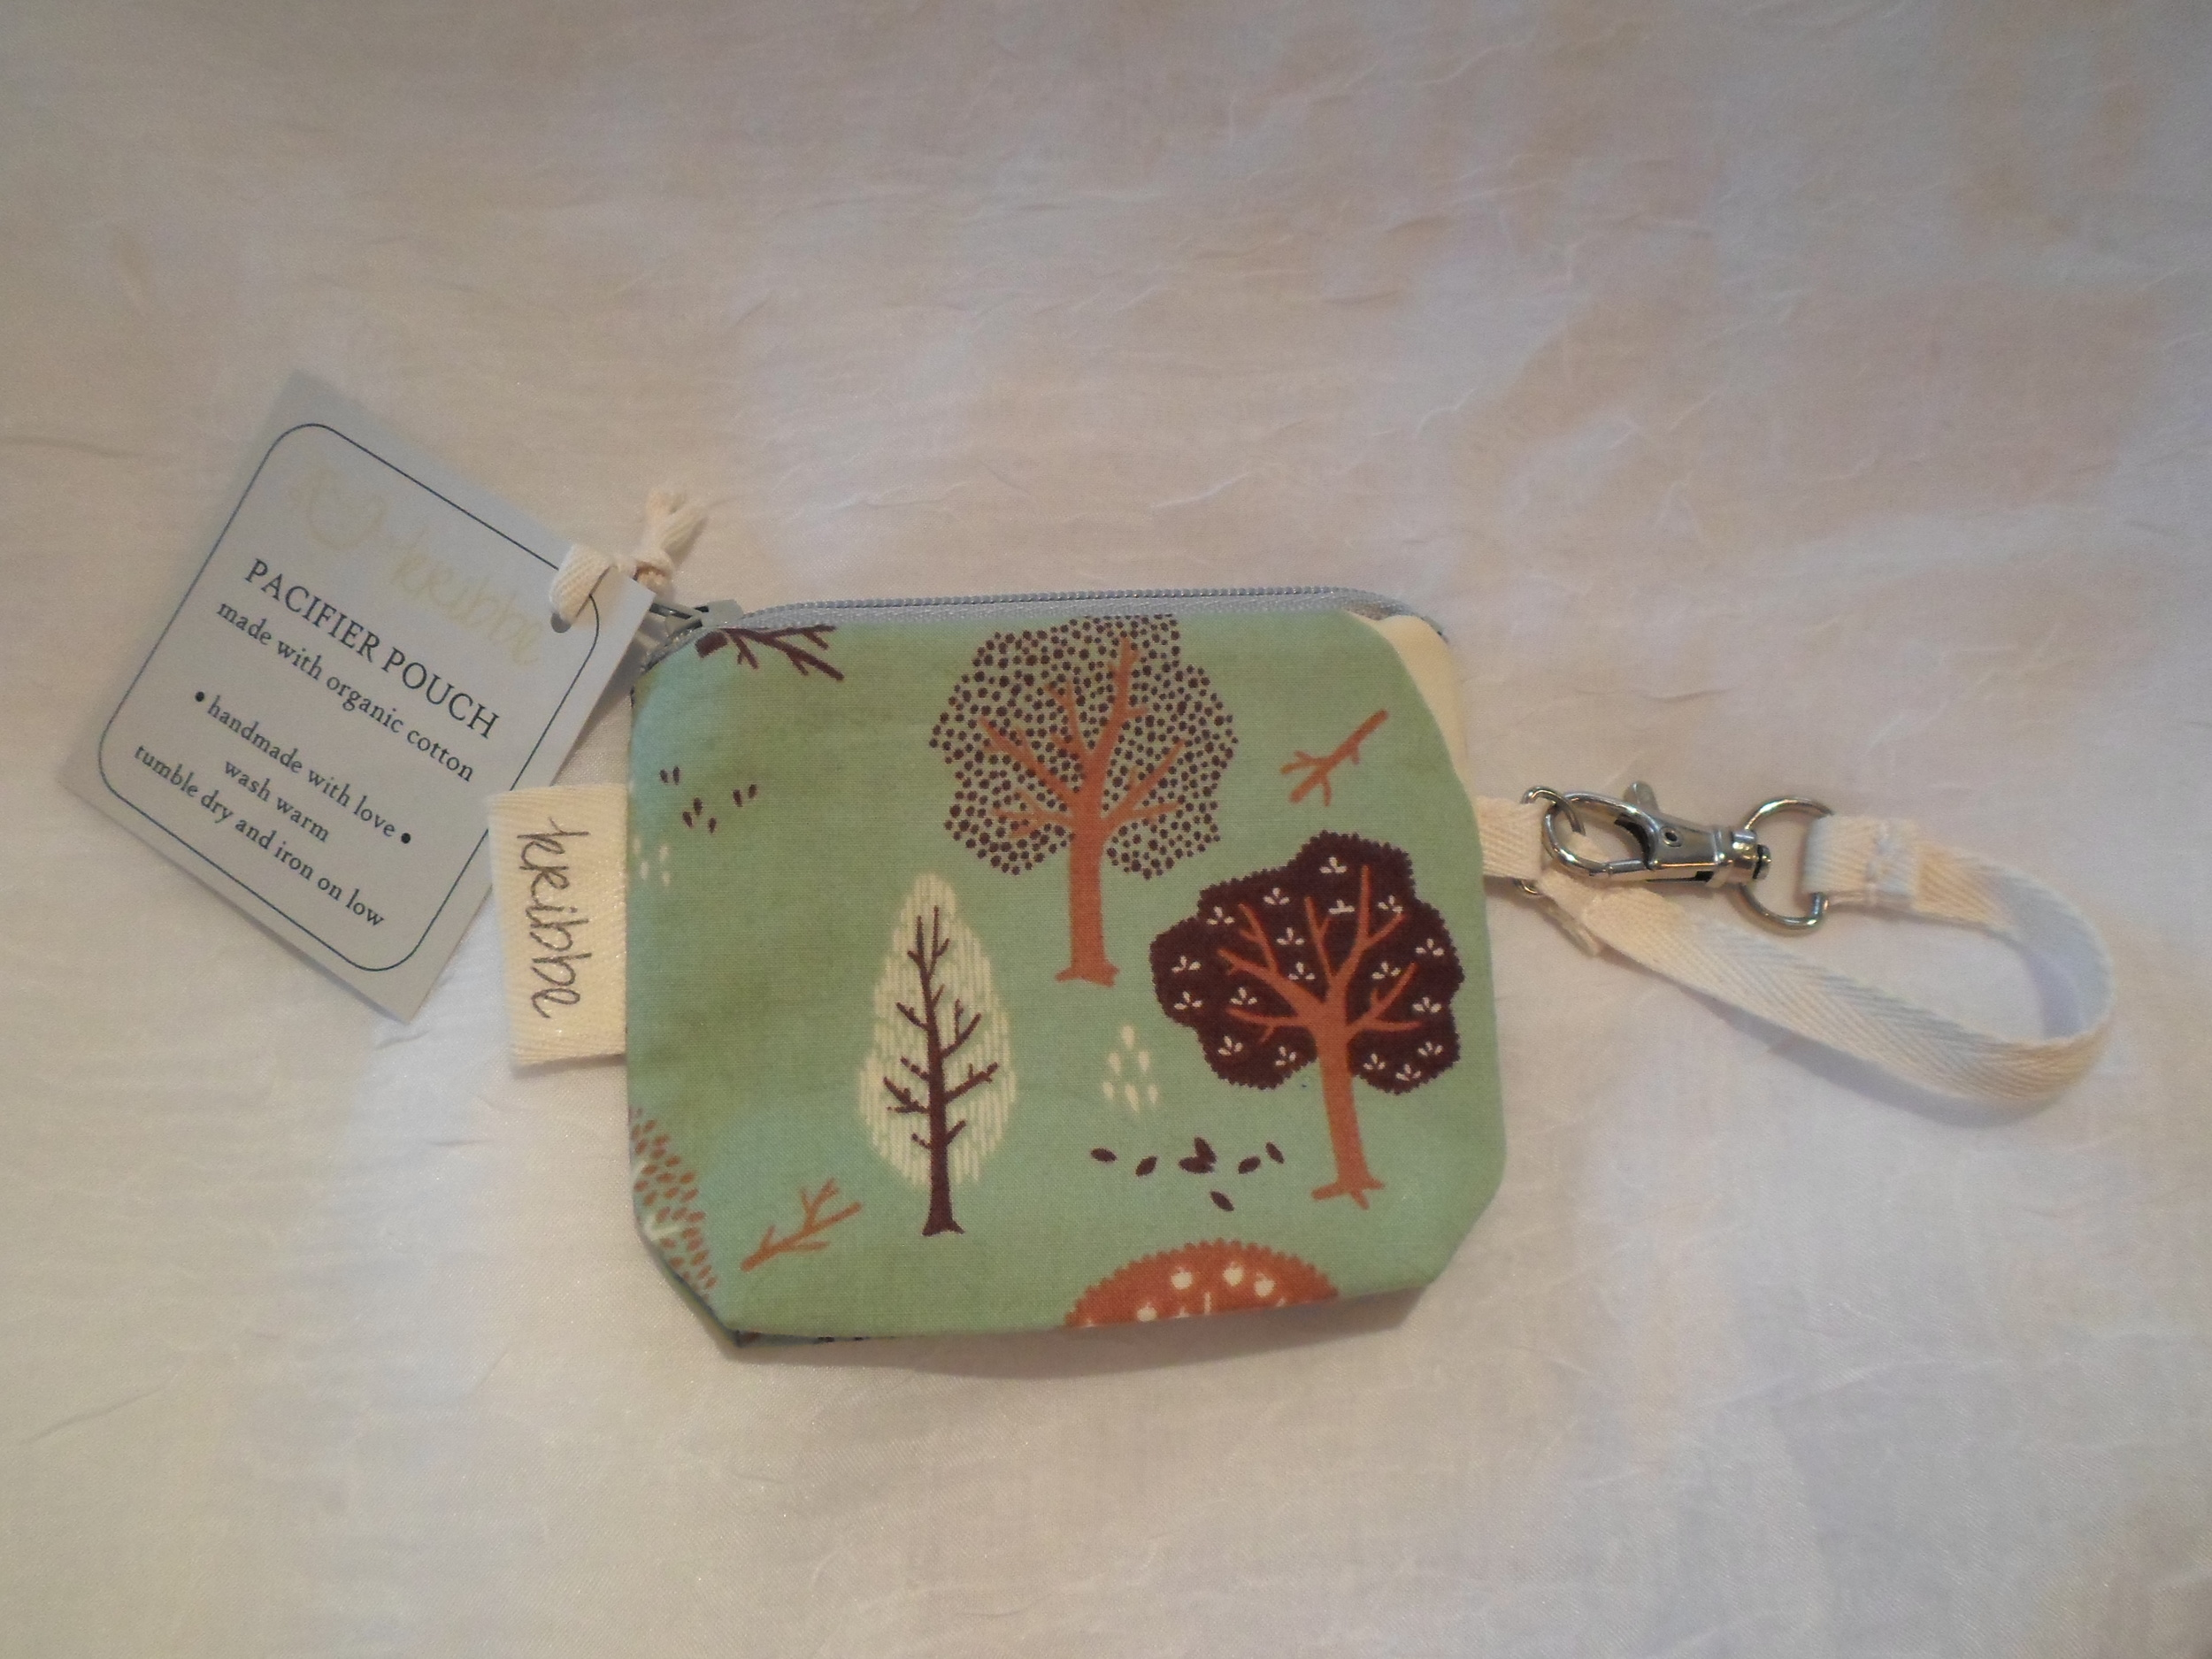 Kribbe Organic Pacifier Pouch - Locally Handmade   $10    Wants 1    PURCHASED